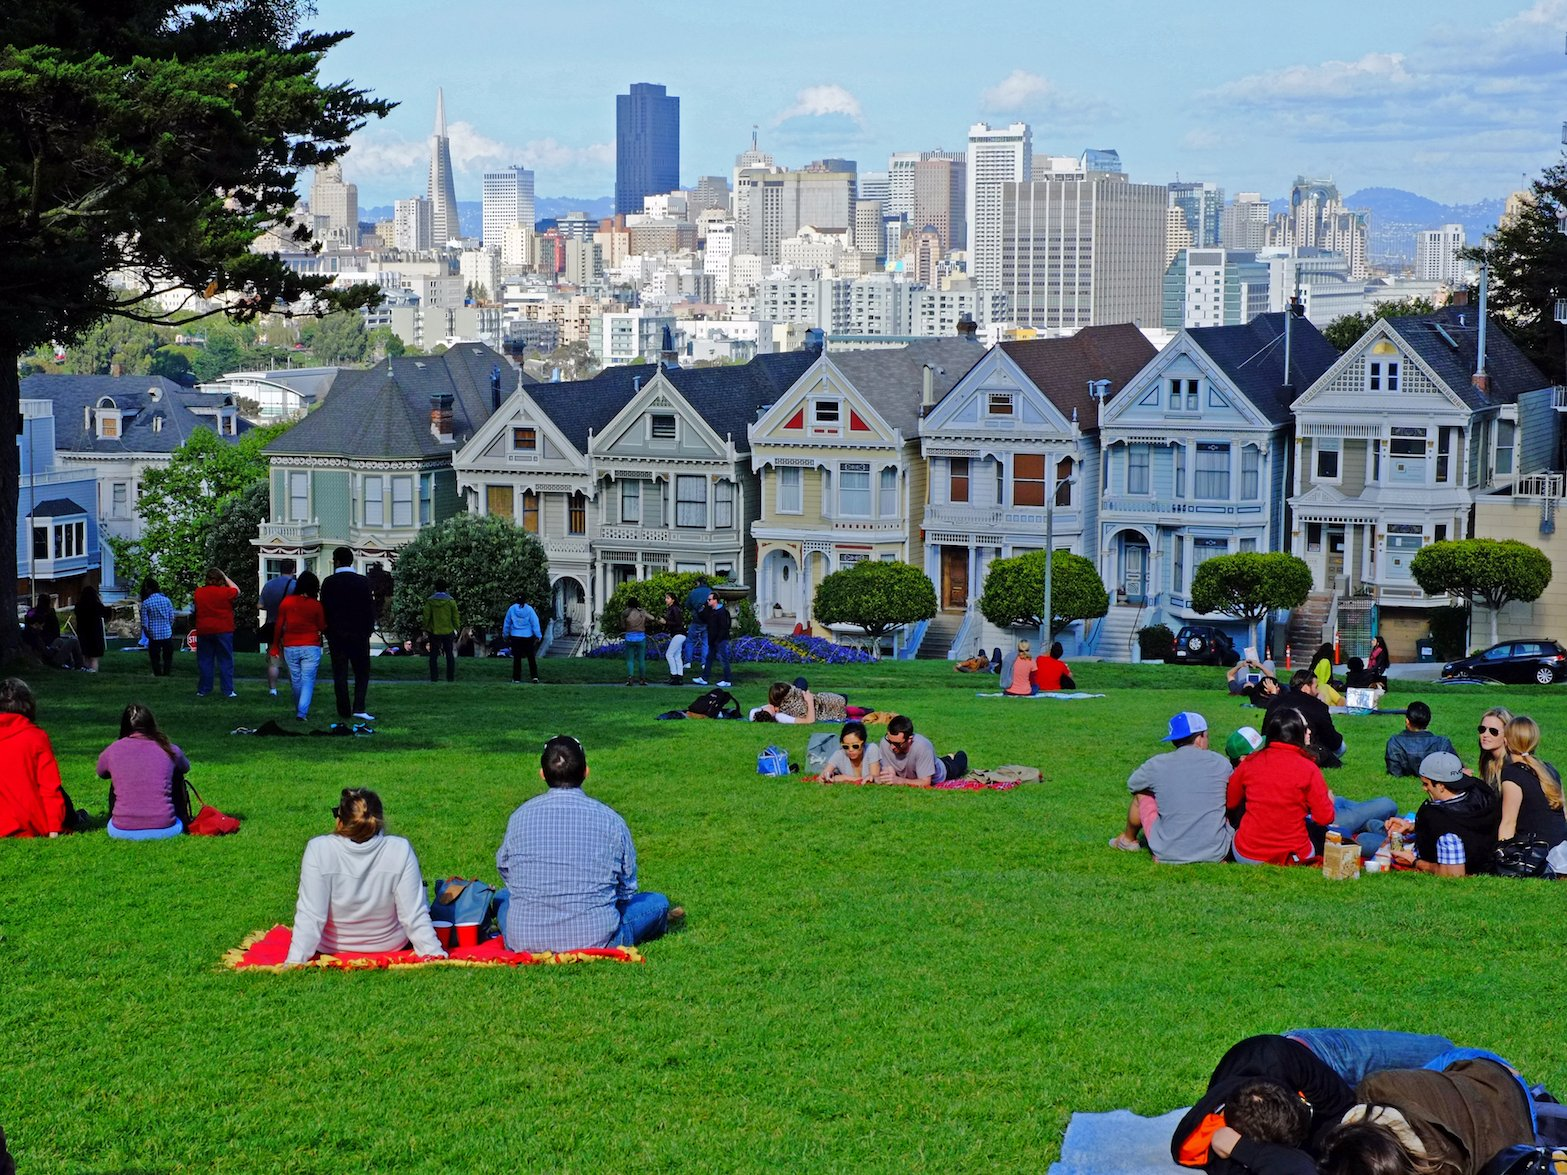 9218e shutterstock215227885 An indicator of future home sales in San Francisco is plunging